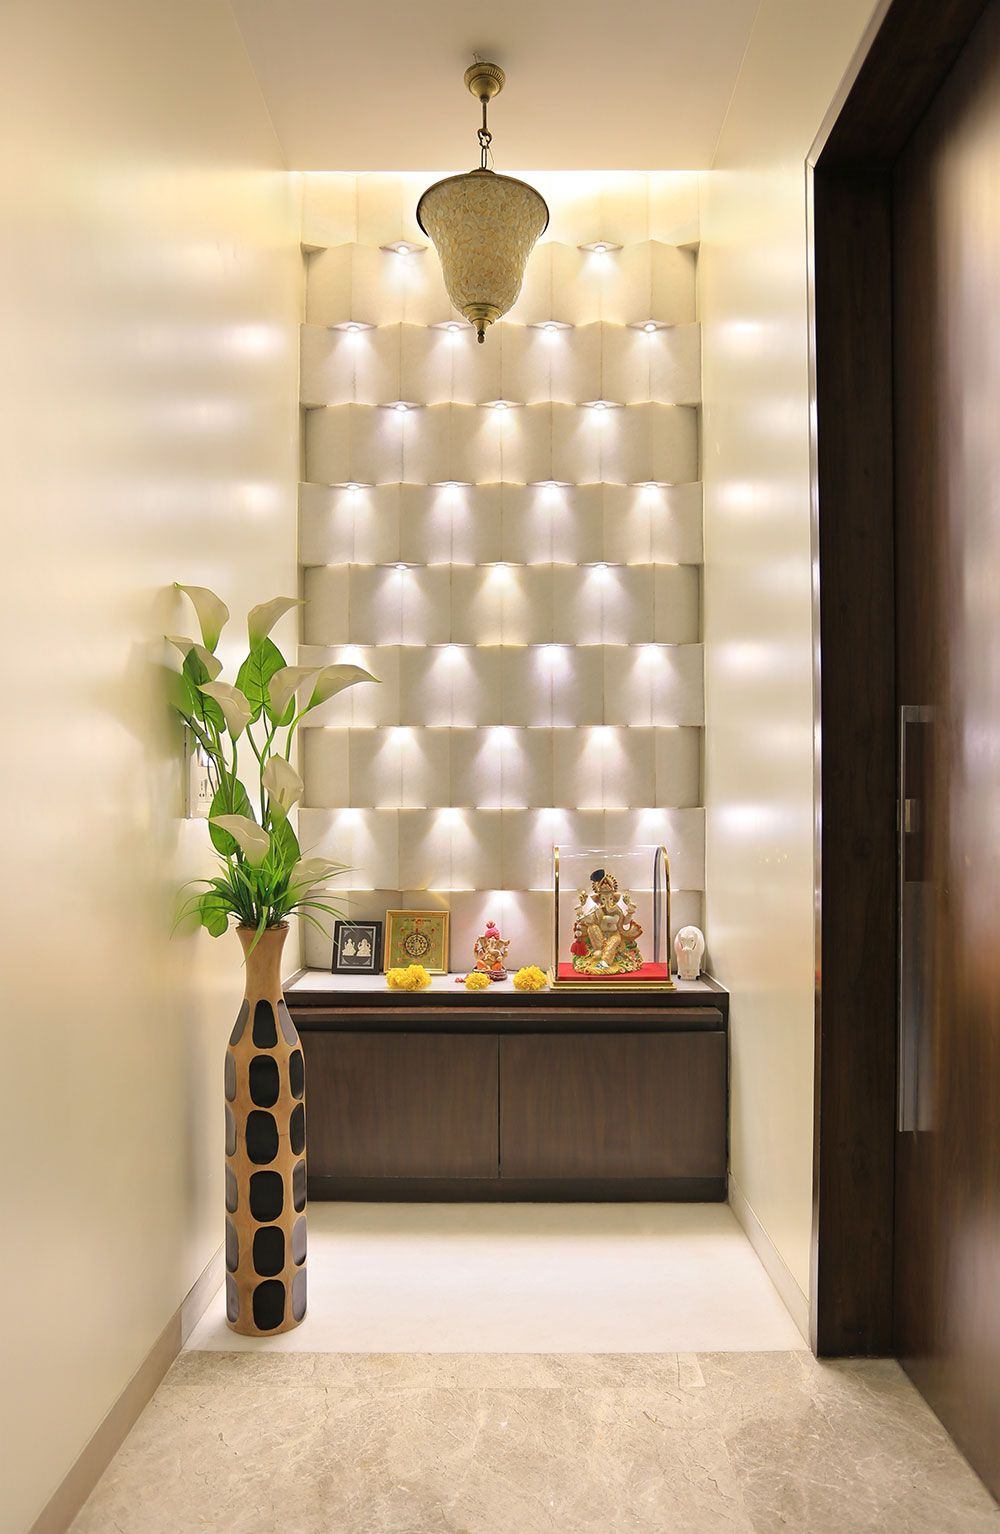 40 Door Design For Mandir Important Ideas: 6 Locations Ideas For Puja Space For Your Home